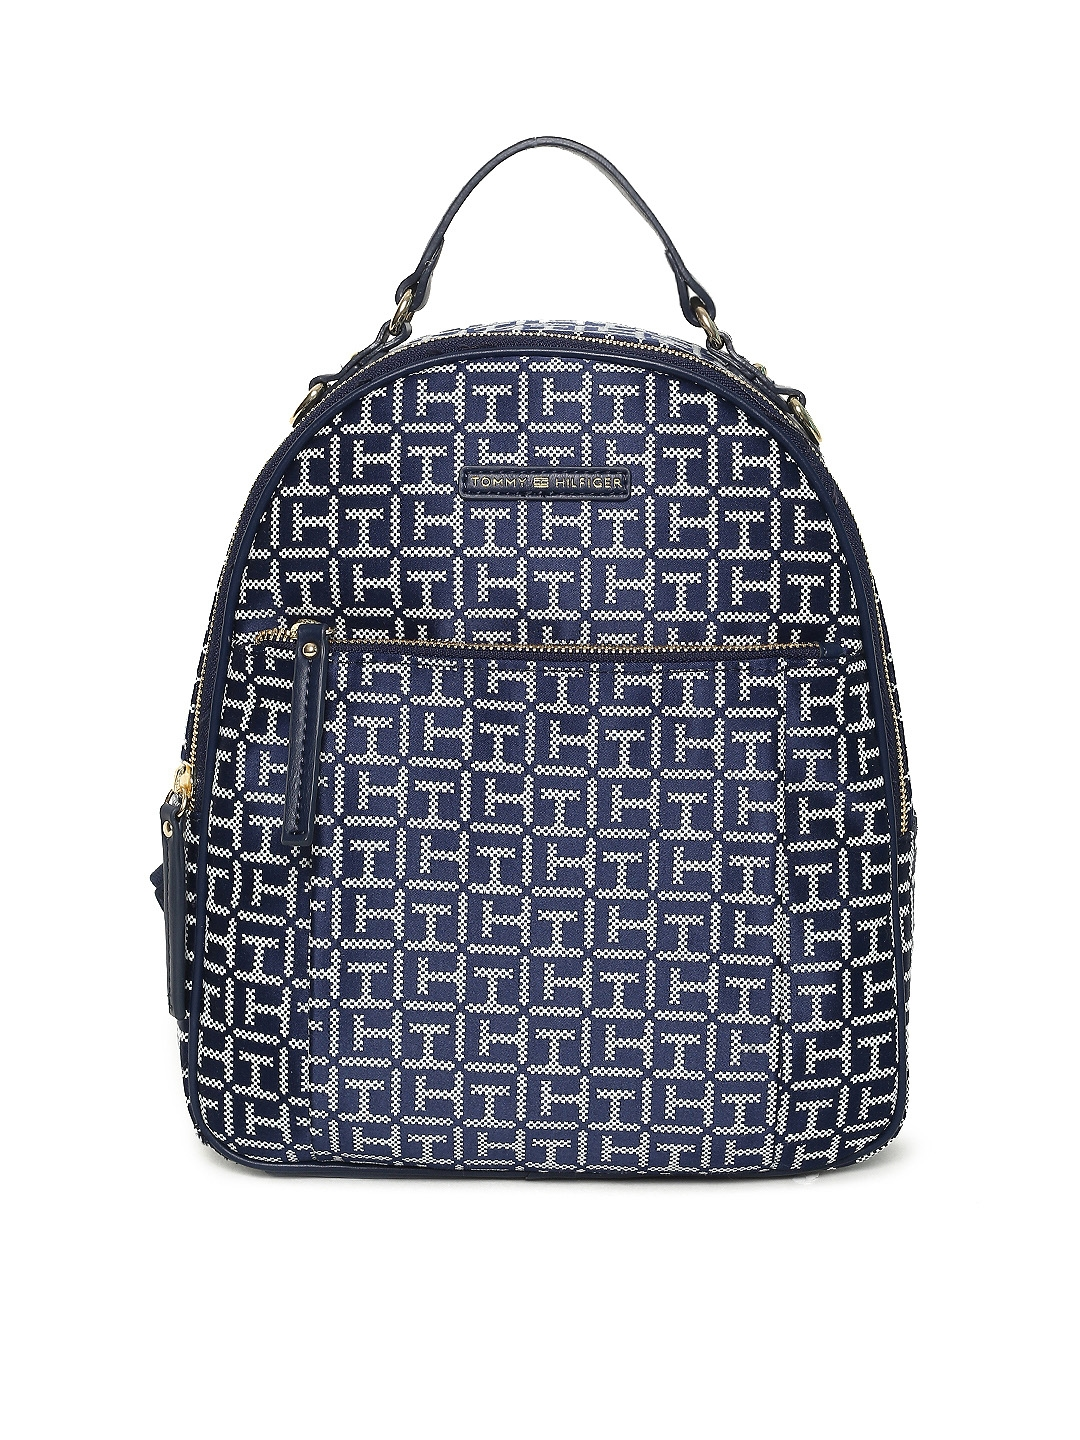 6e9f3060bd Buy Tommy Hilfiger Women Navy Blue   White Textured Backpack ...